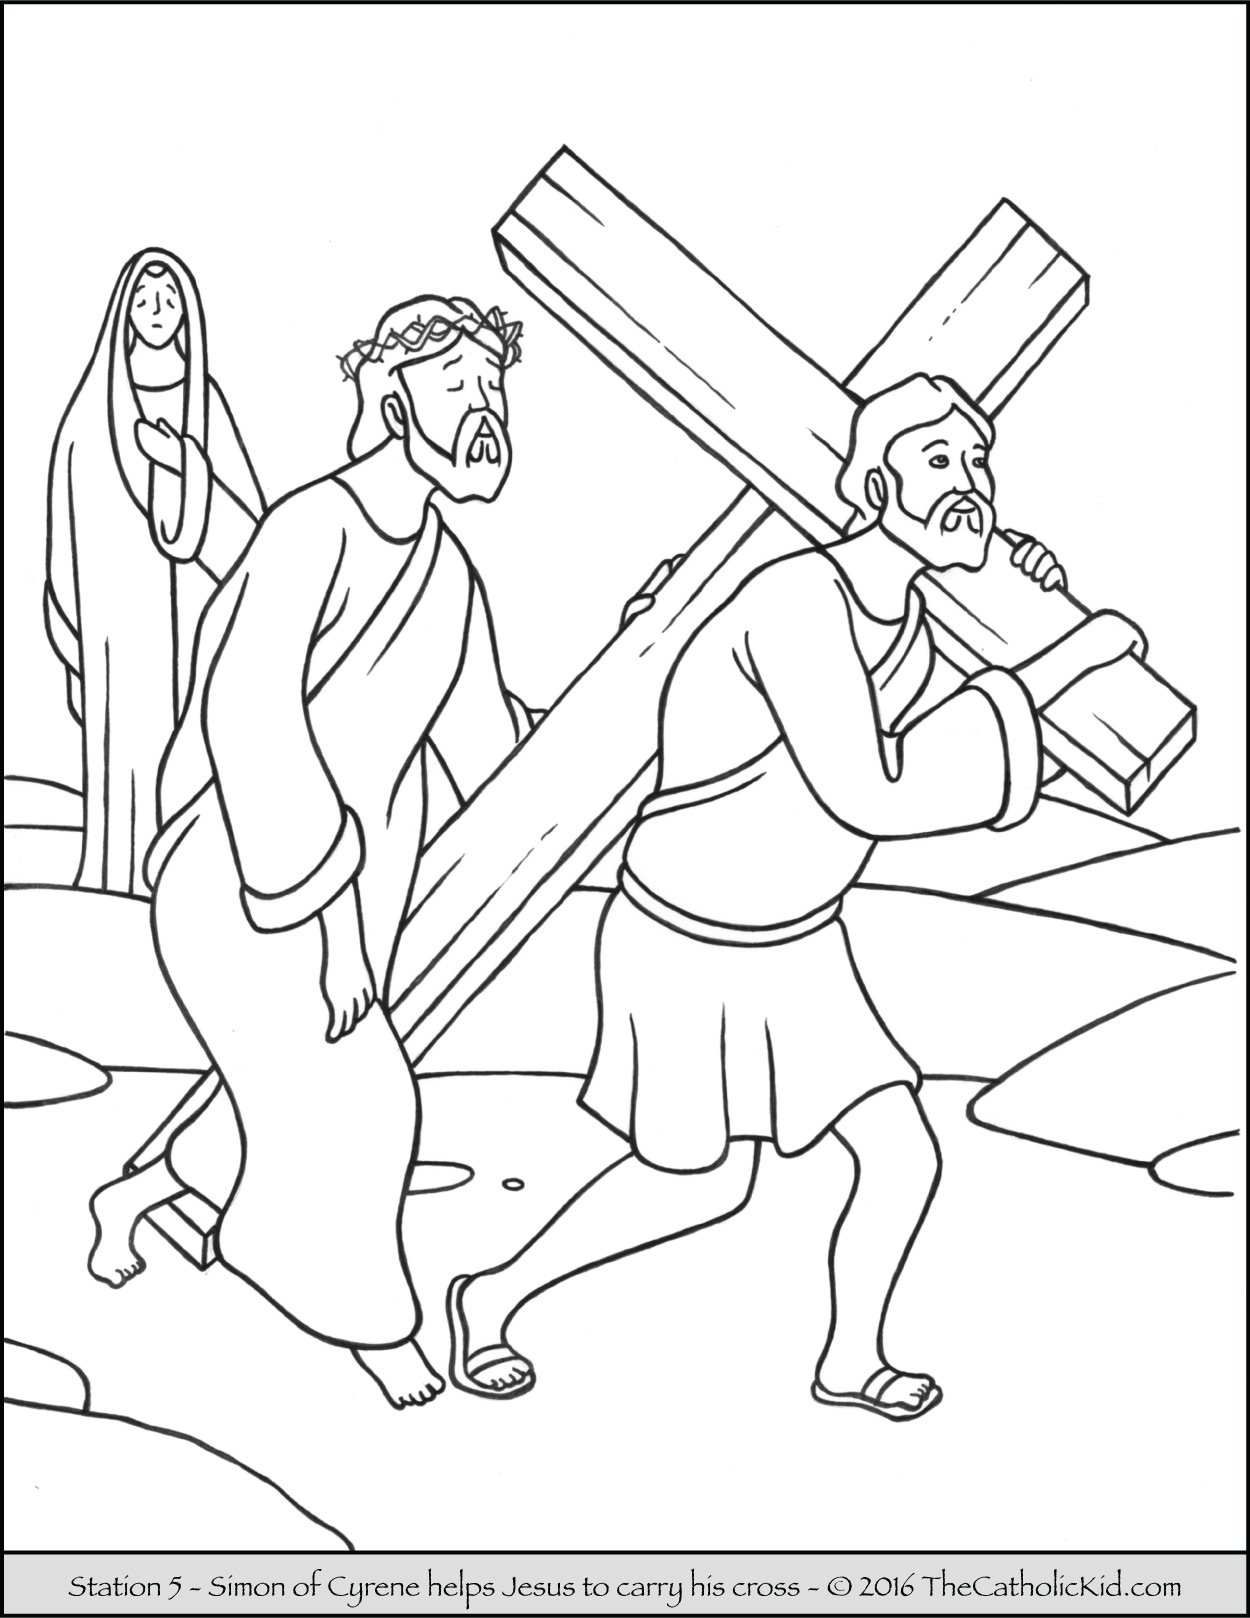 Stations Of The Cross Coloring Pages Glamorous Stations Of The Cross Coloring Pages  The Catholic Kid Decorating Design